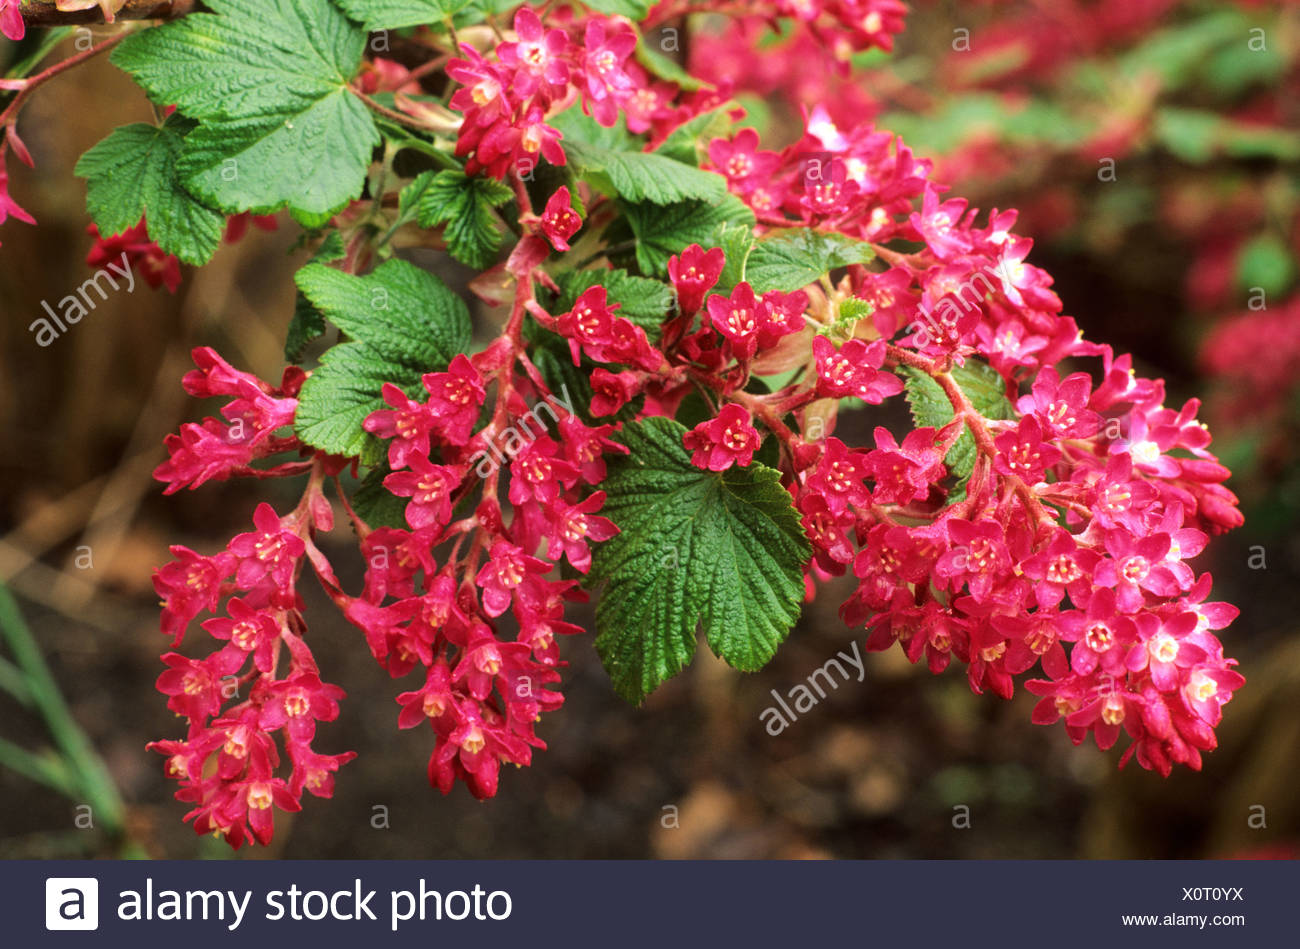 Ribes sanguineum 'King Edward VII', flowering currant bush, red flowers, garden plant currants - Stock Image